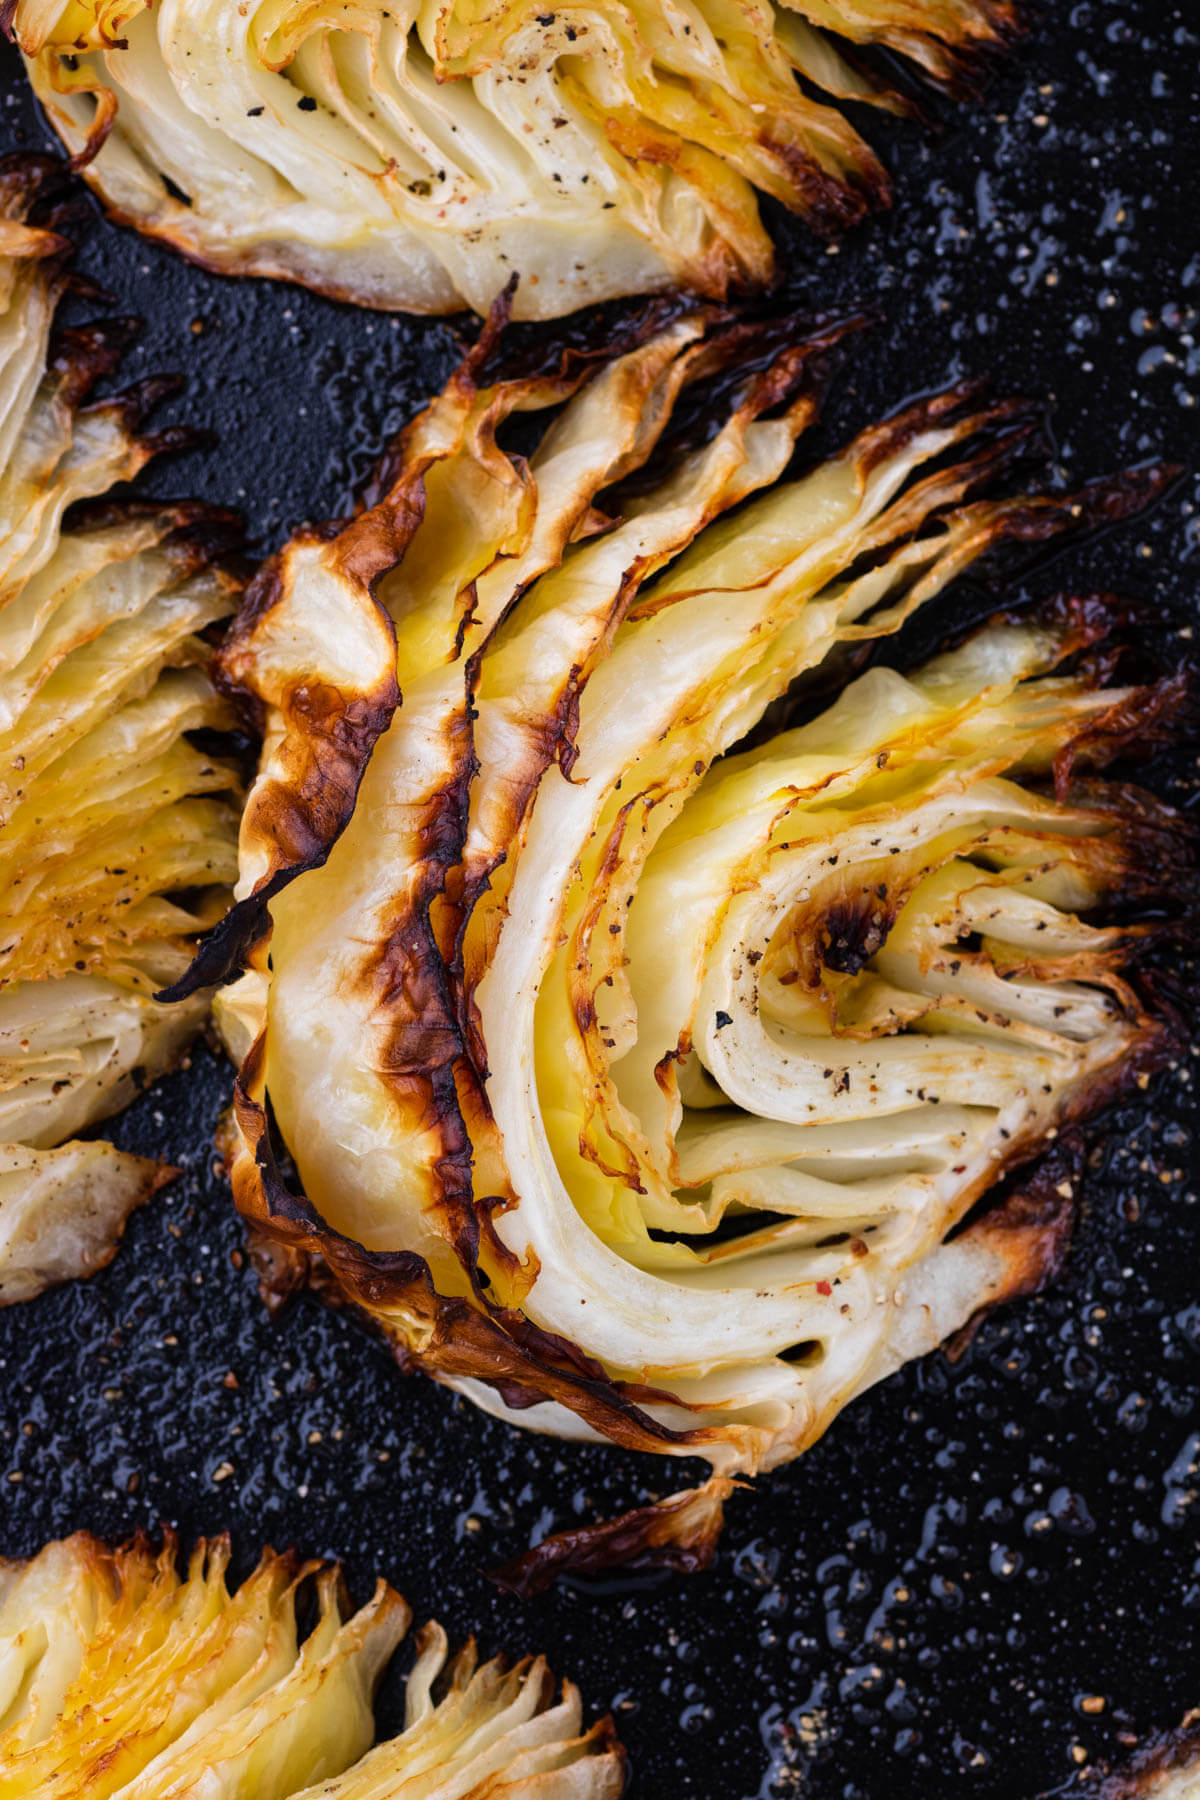 A wedge of Roasted Cabbage in a dark roasting pan.